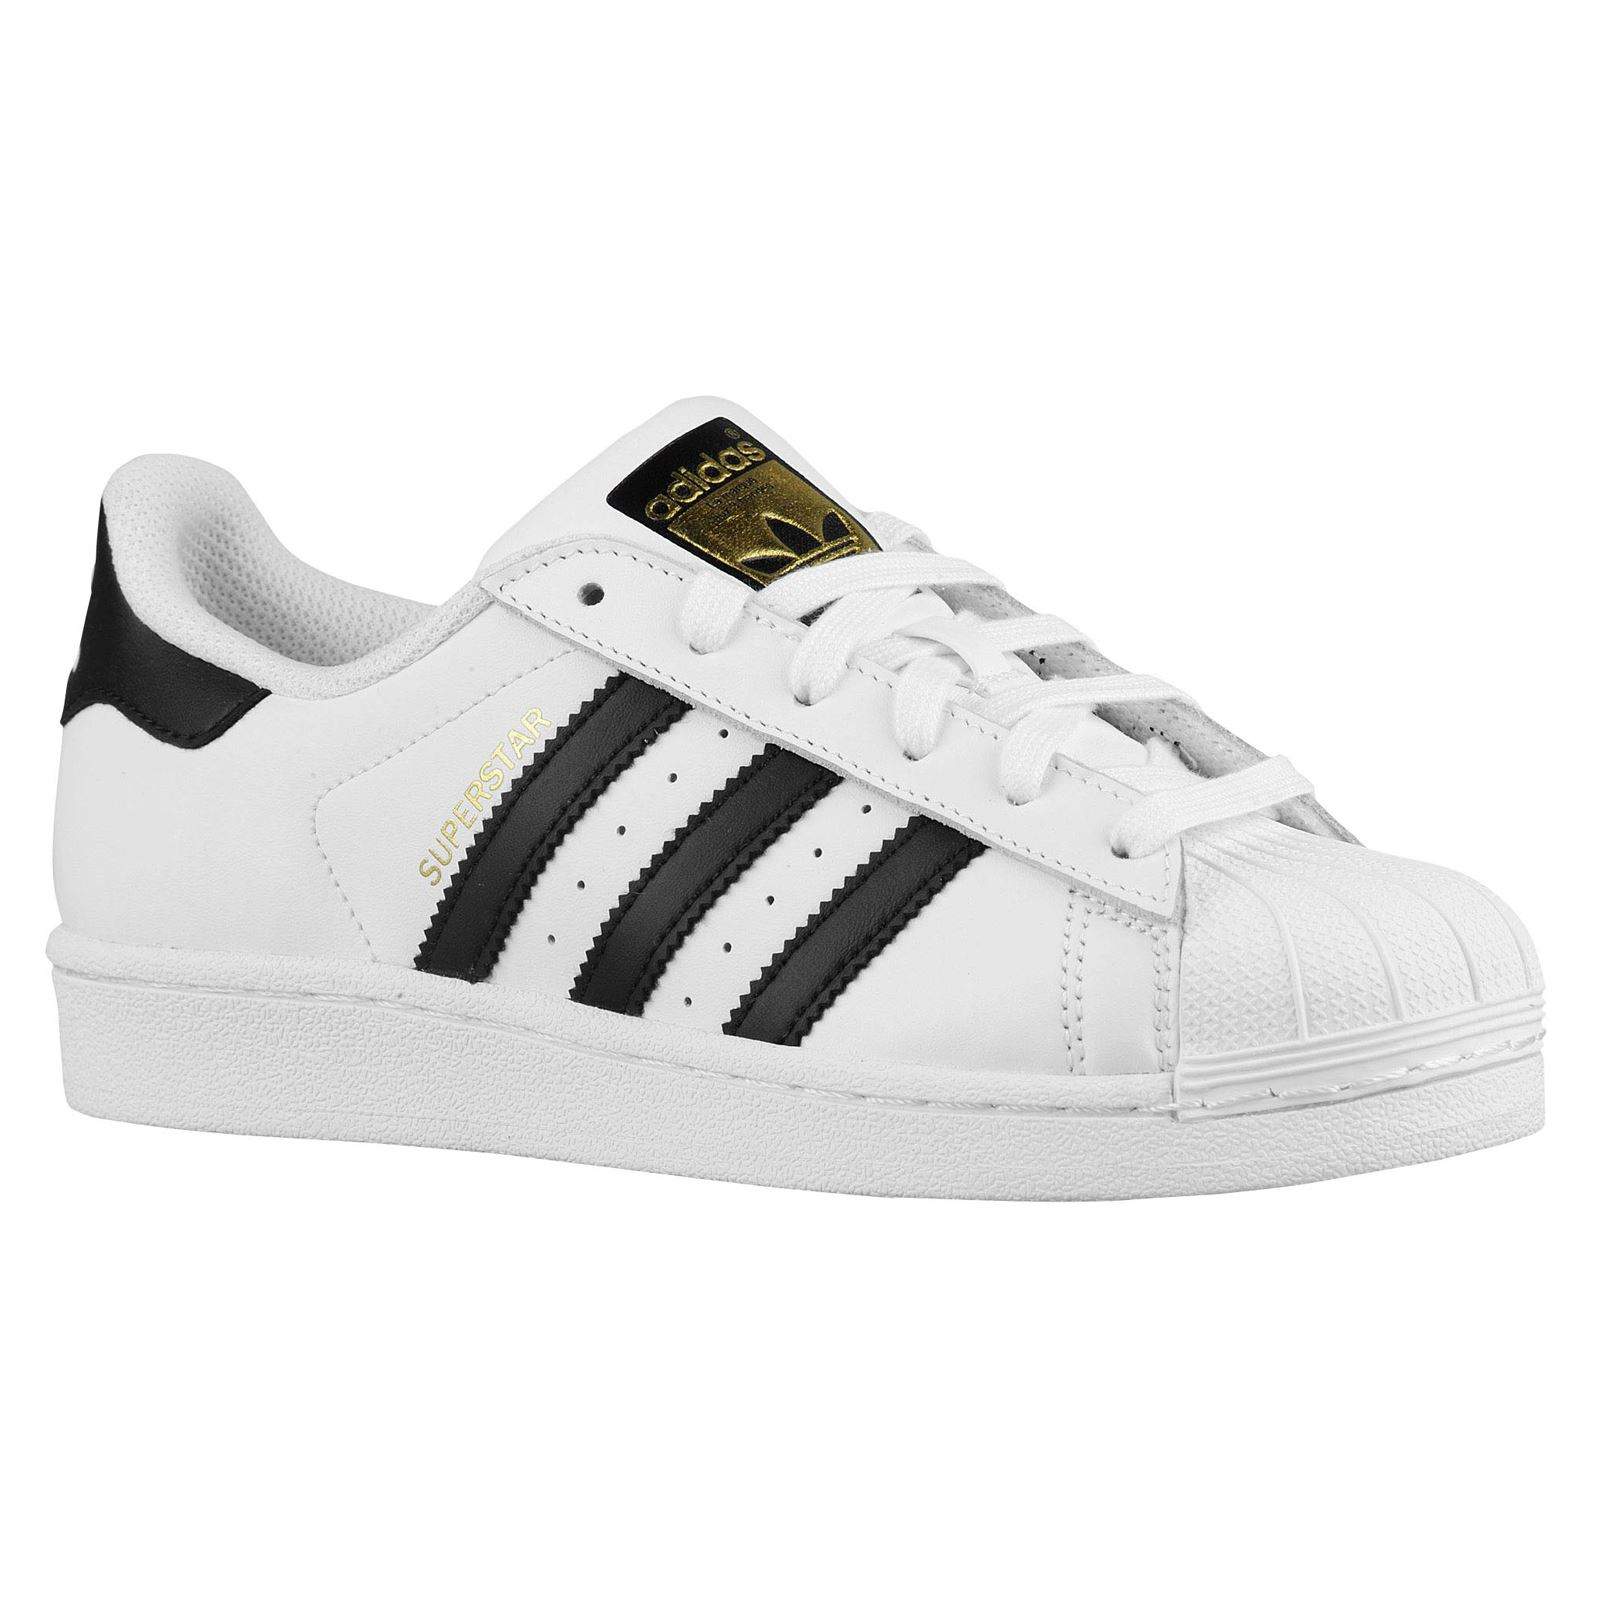 dae0976ddab3 ... fluid cf casual sports trainers smart shoes size 4 2 uk 17395 1ebbb   coupon adidas superstar white black boys girls youths trainers sneakers  0bd38 75c7a